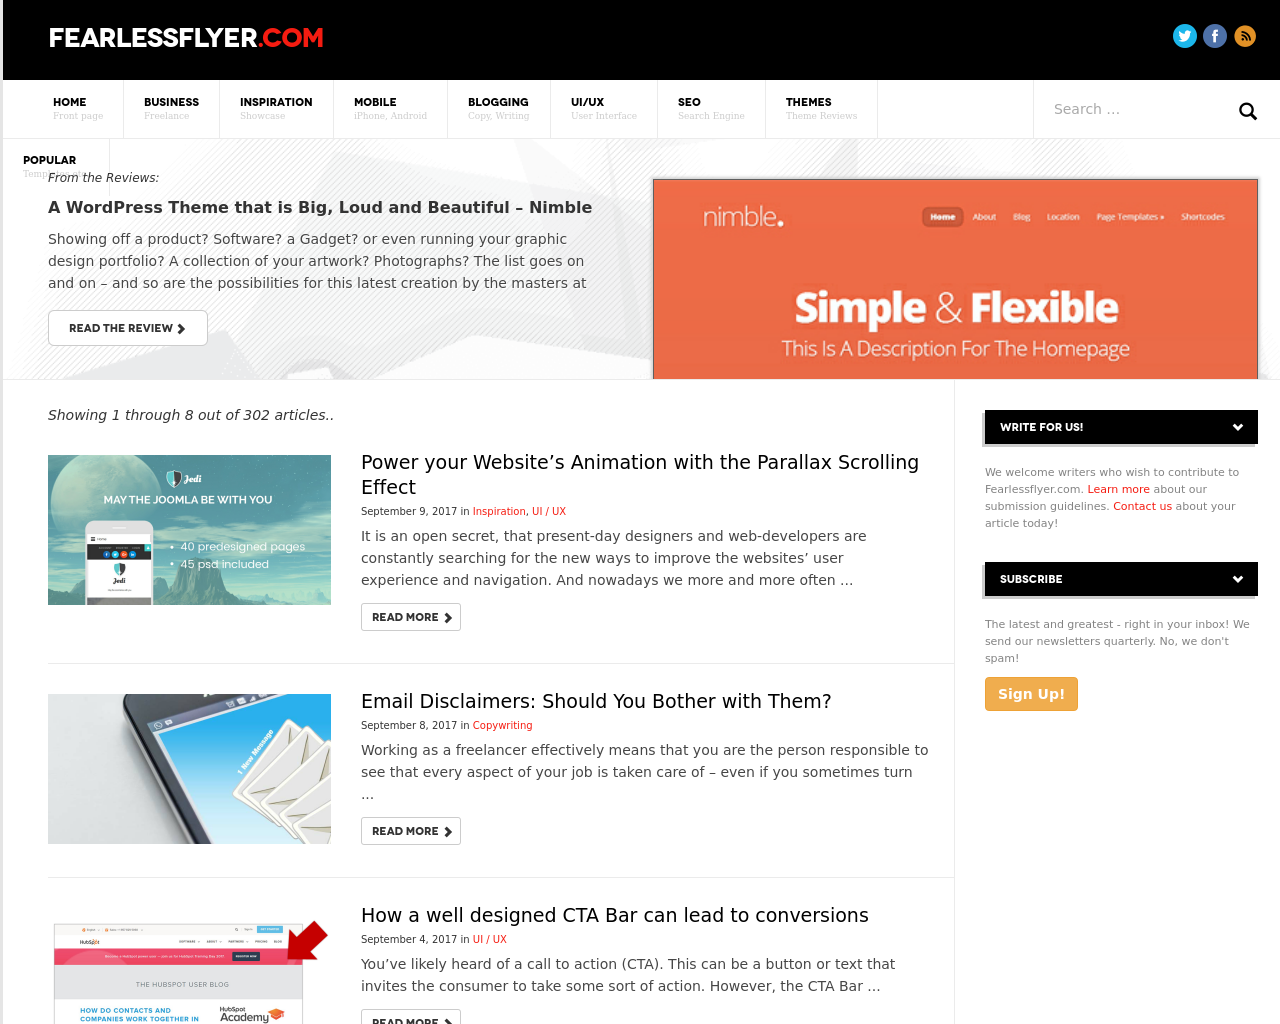 Fearless-Flyer-Advertising-Reviews-Pricing